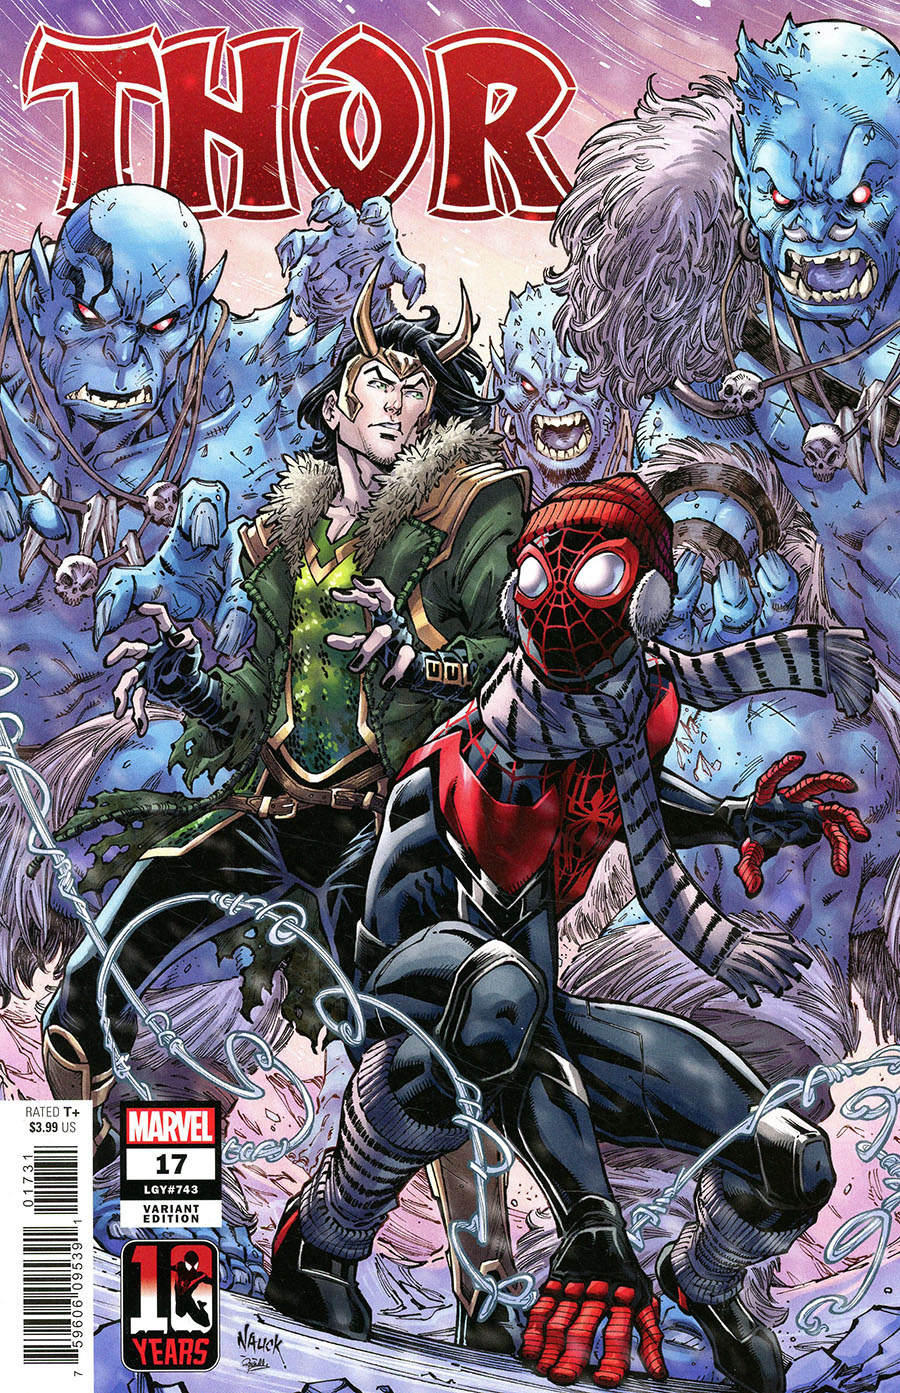 Thor Vol 6 #17 Cover B Variant Todd Nauck Miles Morales Spider-Man 10th Anniversary Cover